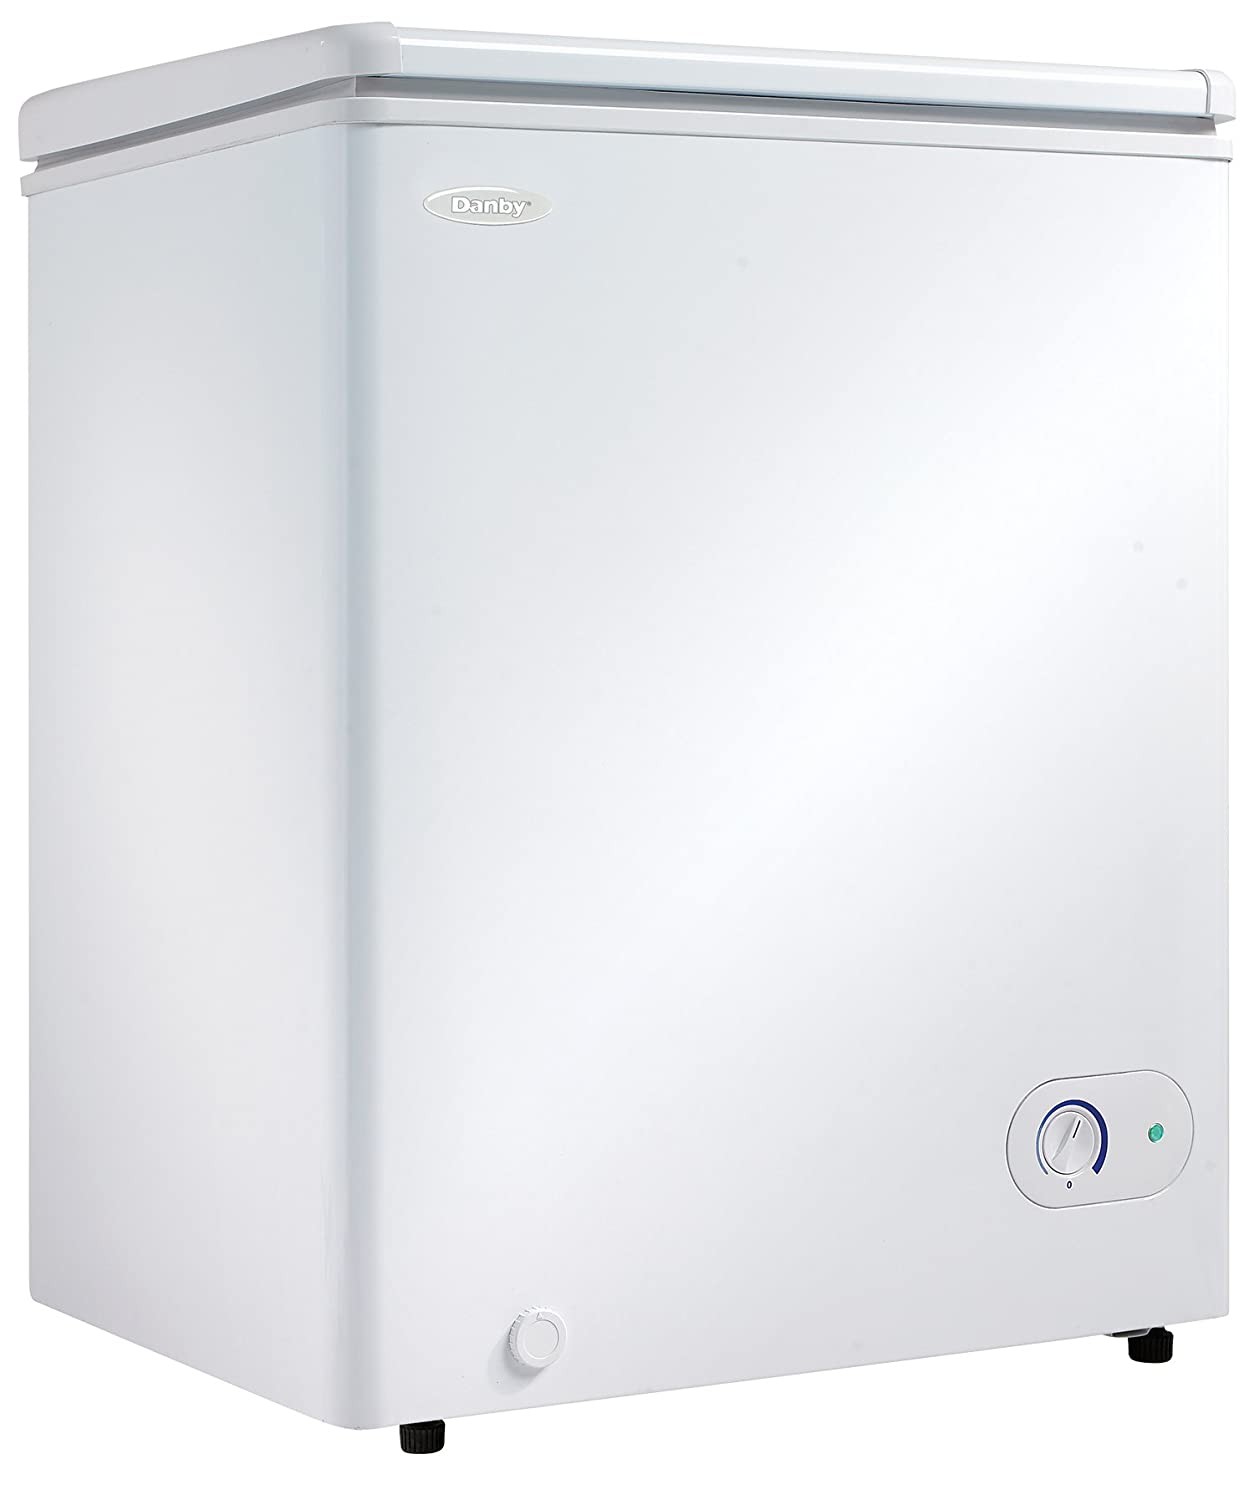 danby chest freezer smartphone vs igloo frf434 chest freezer 35 cu ft white comparison review - Chest Freezers On Sale